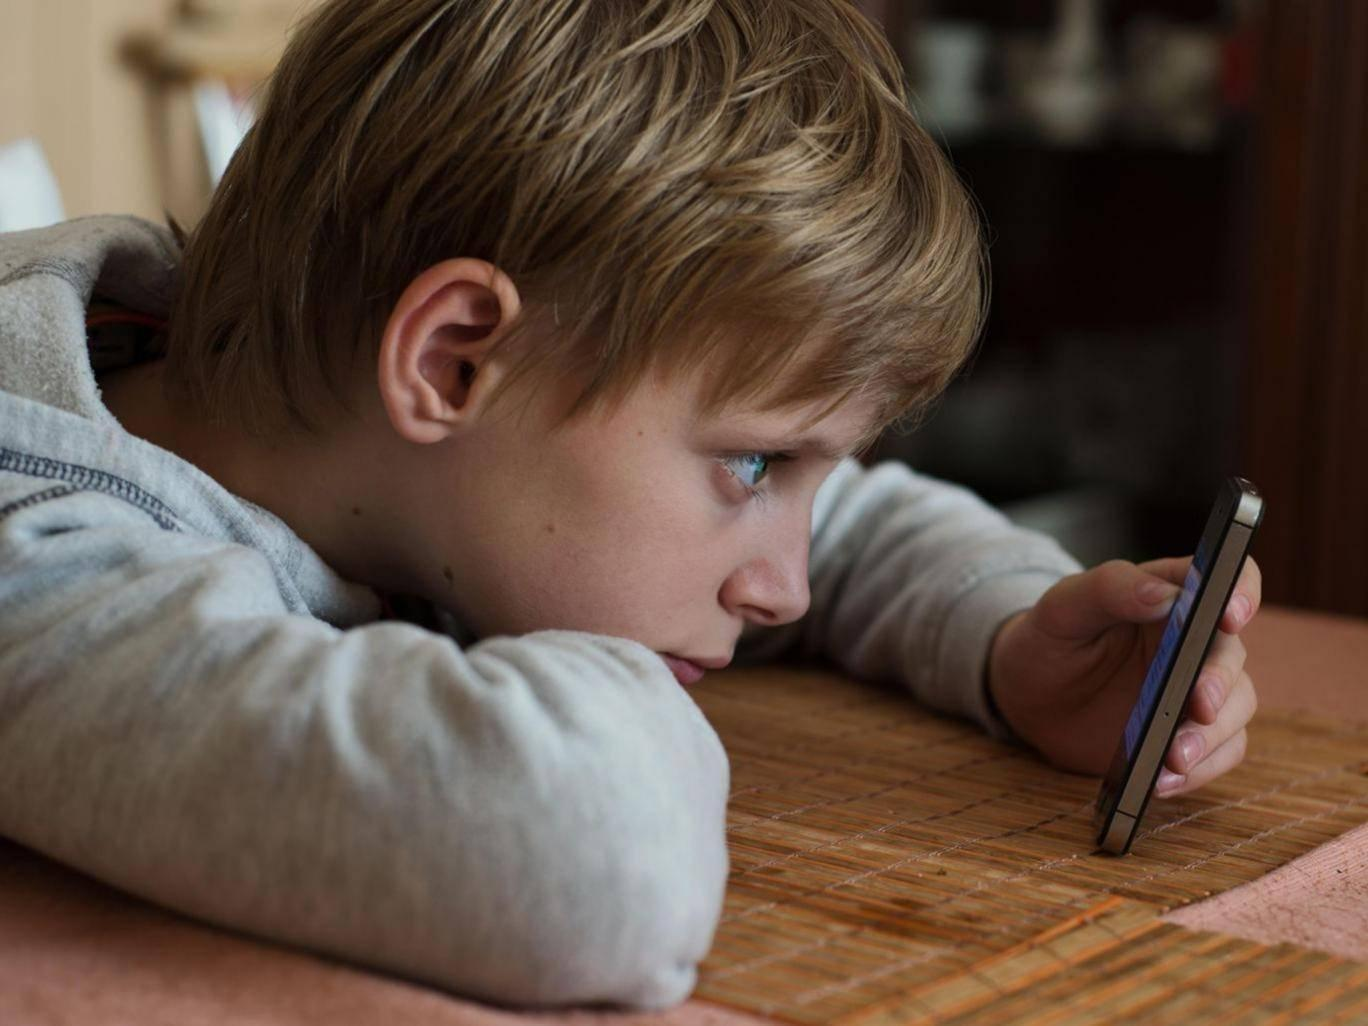 Watching TV three hours a day linked to type 2 diabetes in children